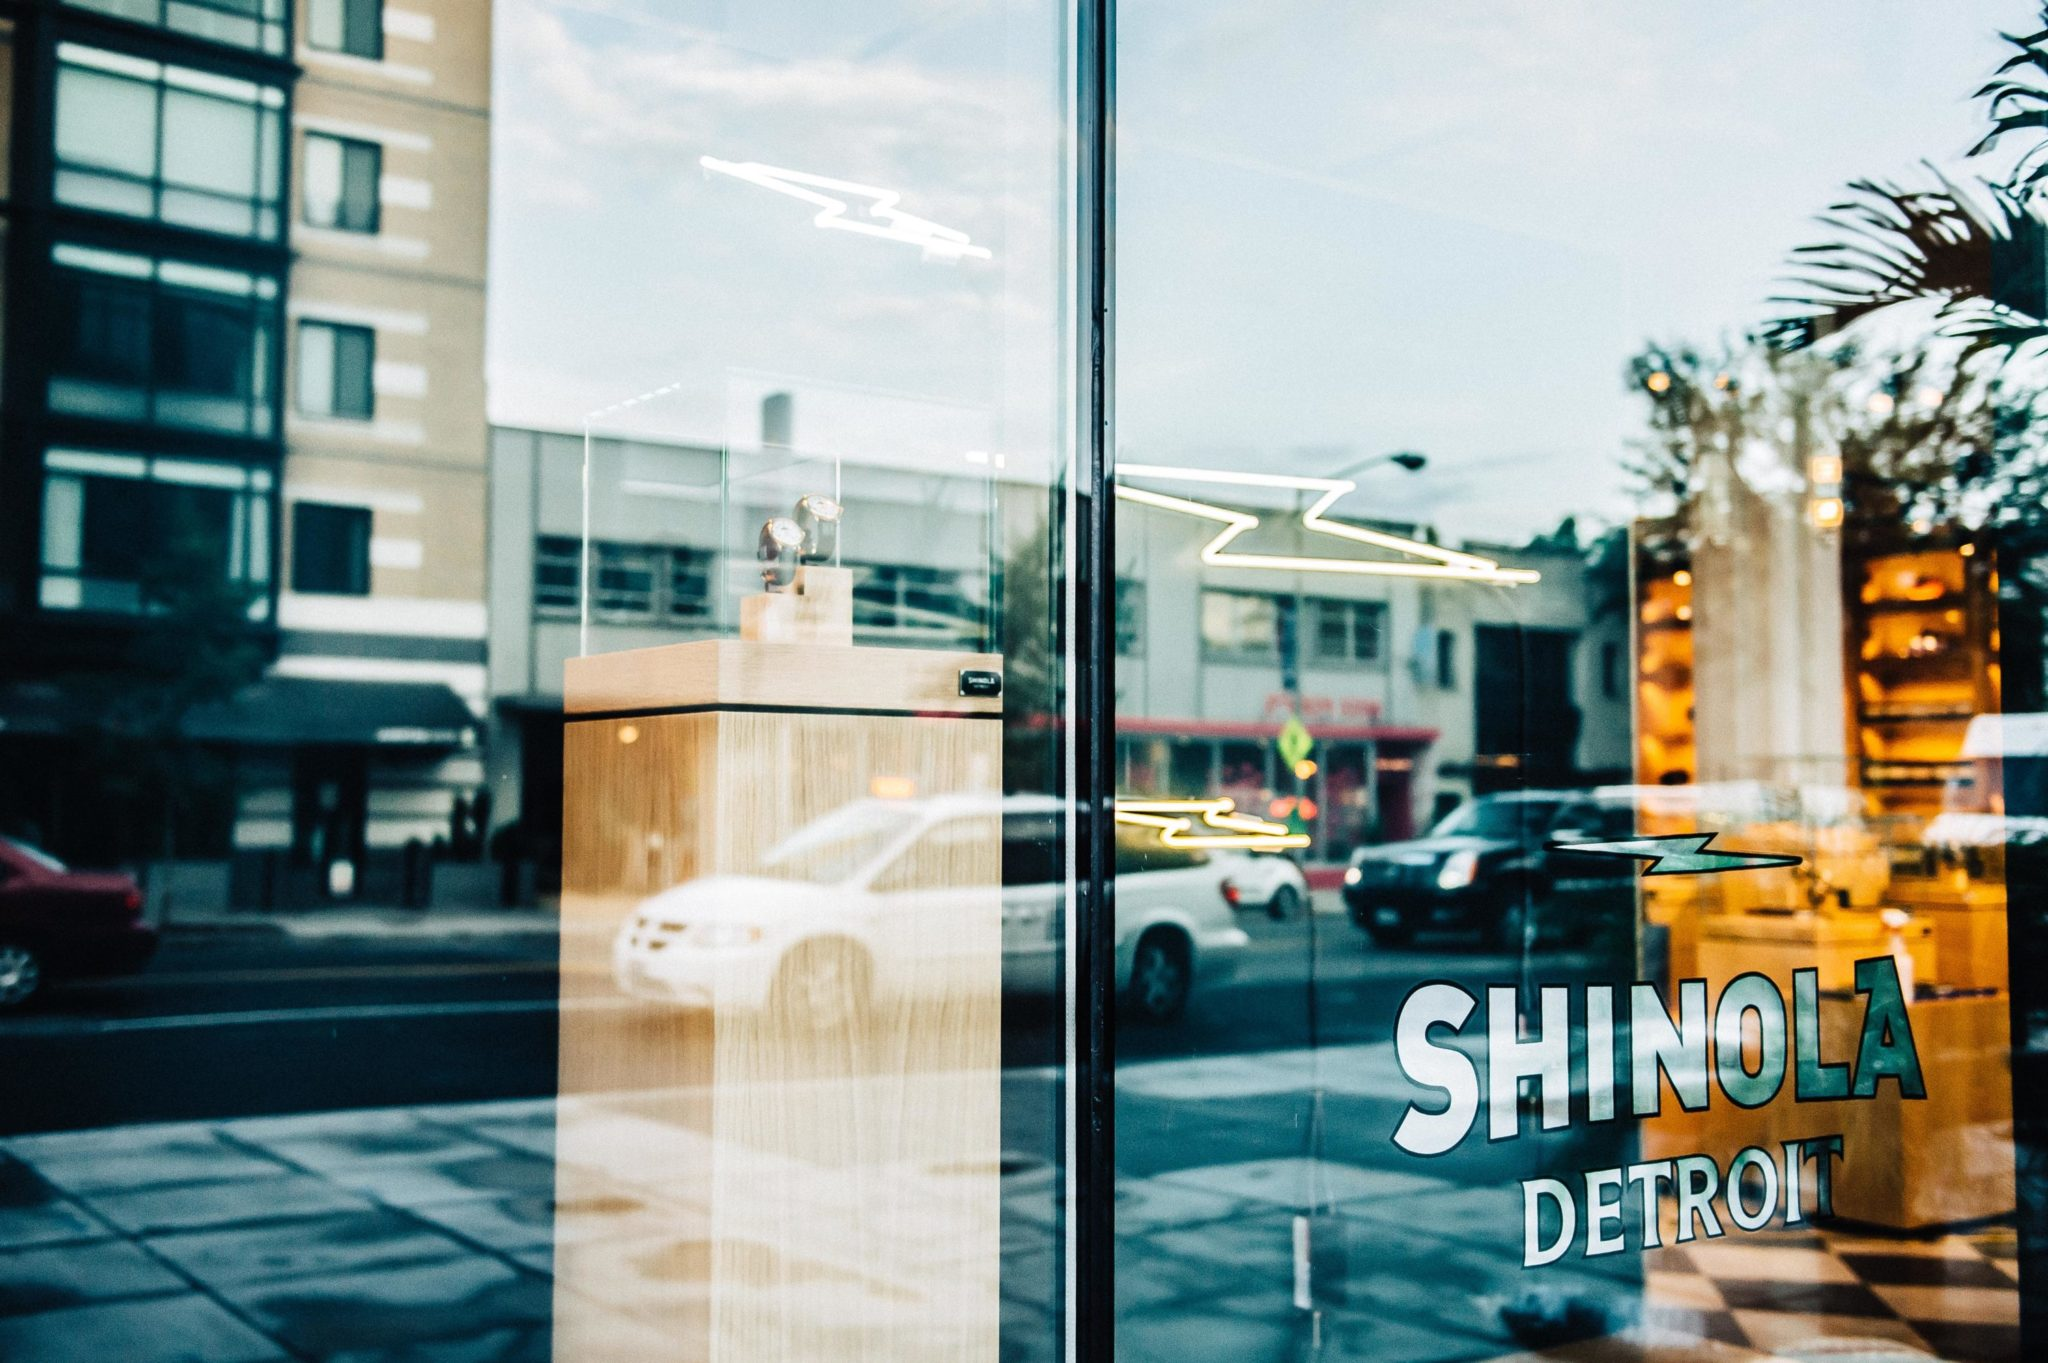 Shinola is coming to Tyson's Corner Center. Shinola is opening second store in DC.